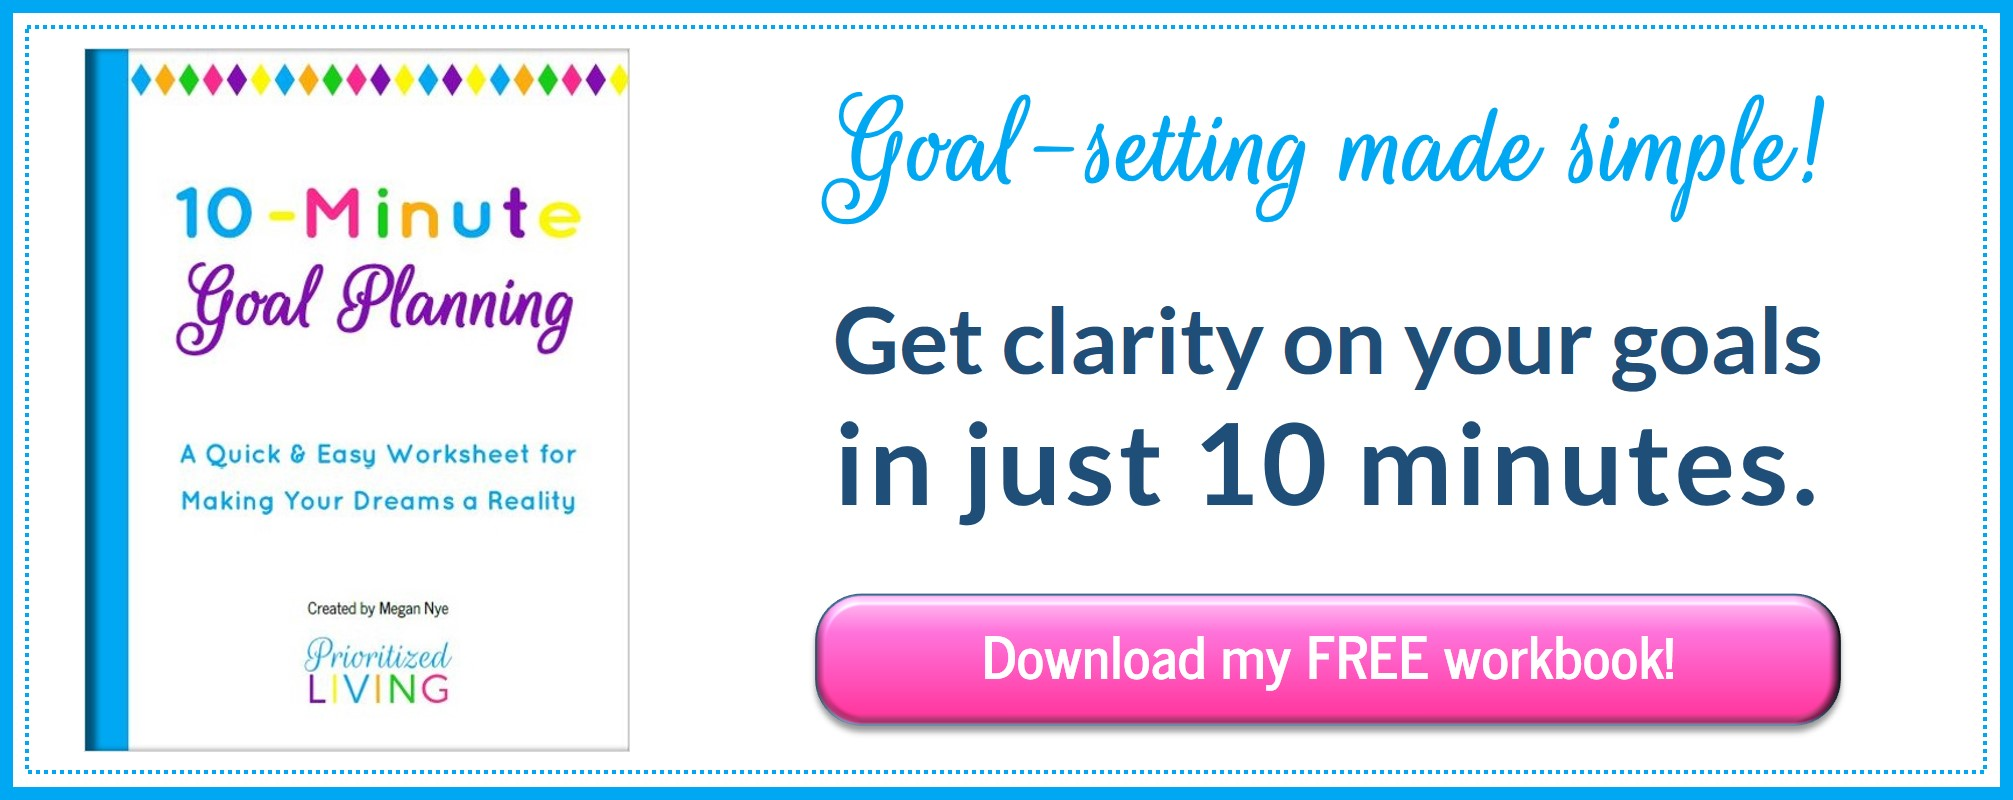 Get a 10-Minute Goal Planning Workbook FREE!